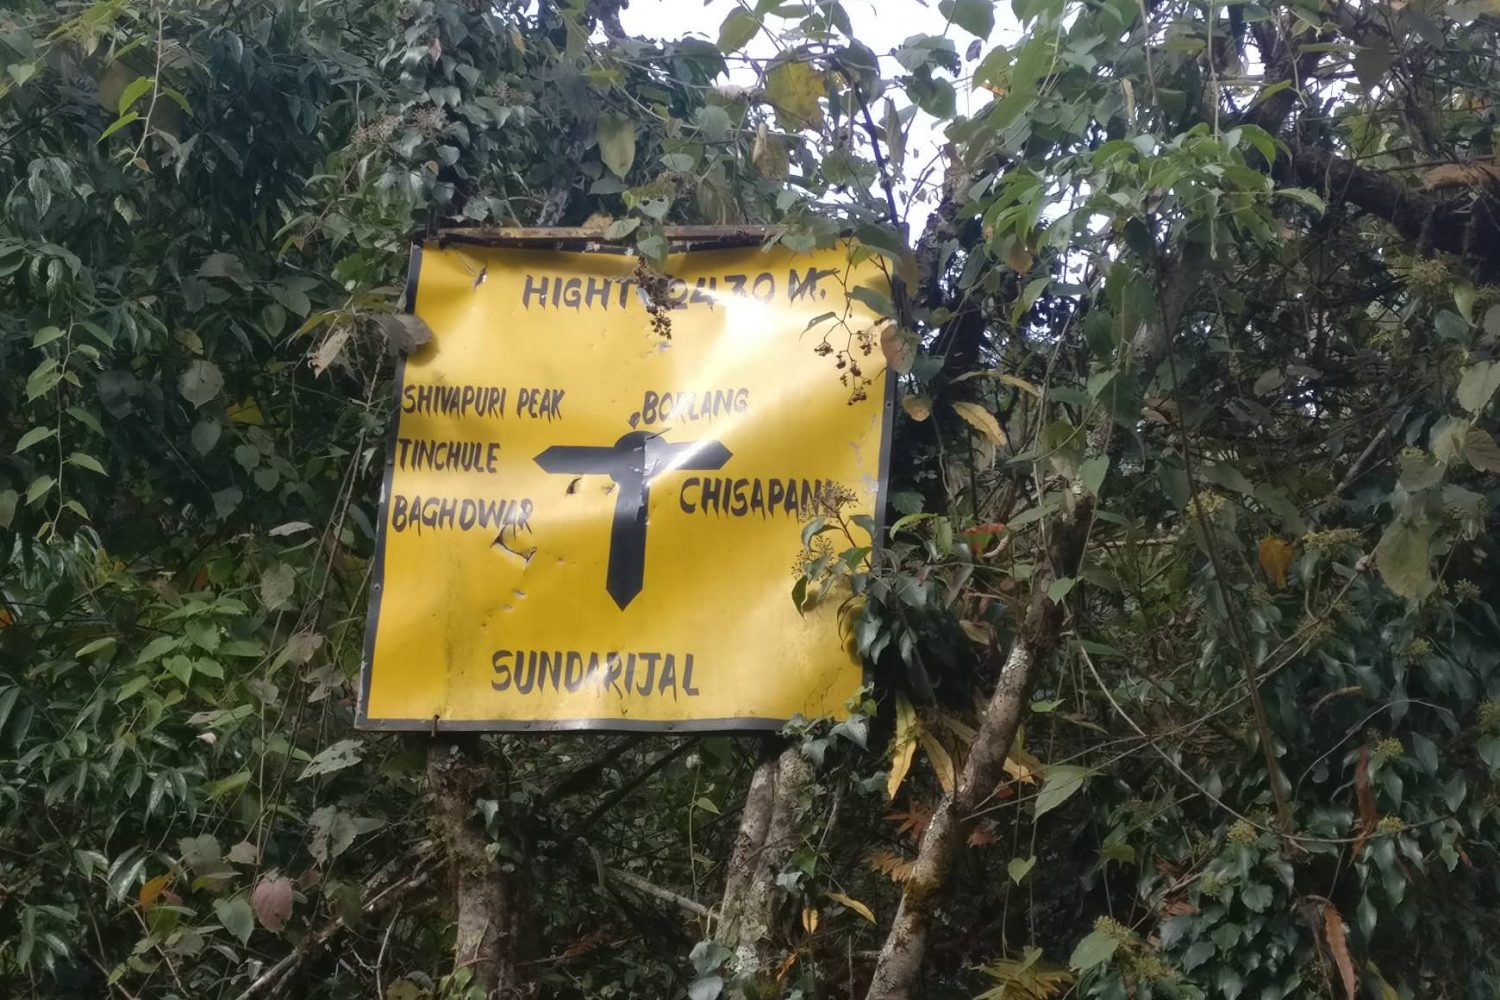 Sign at Shivapuri